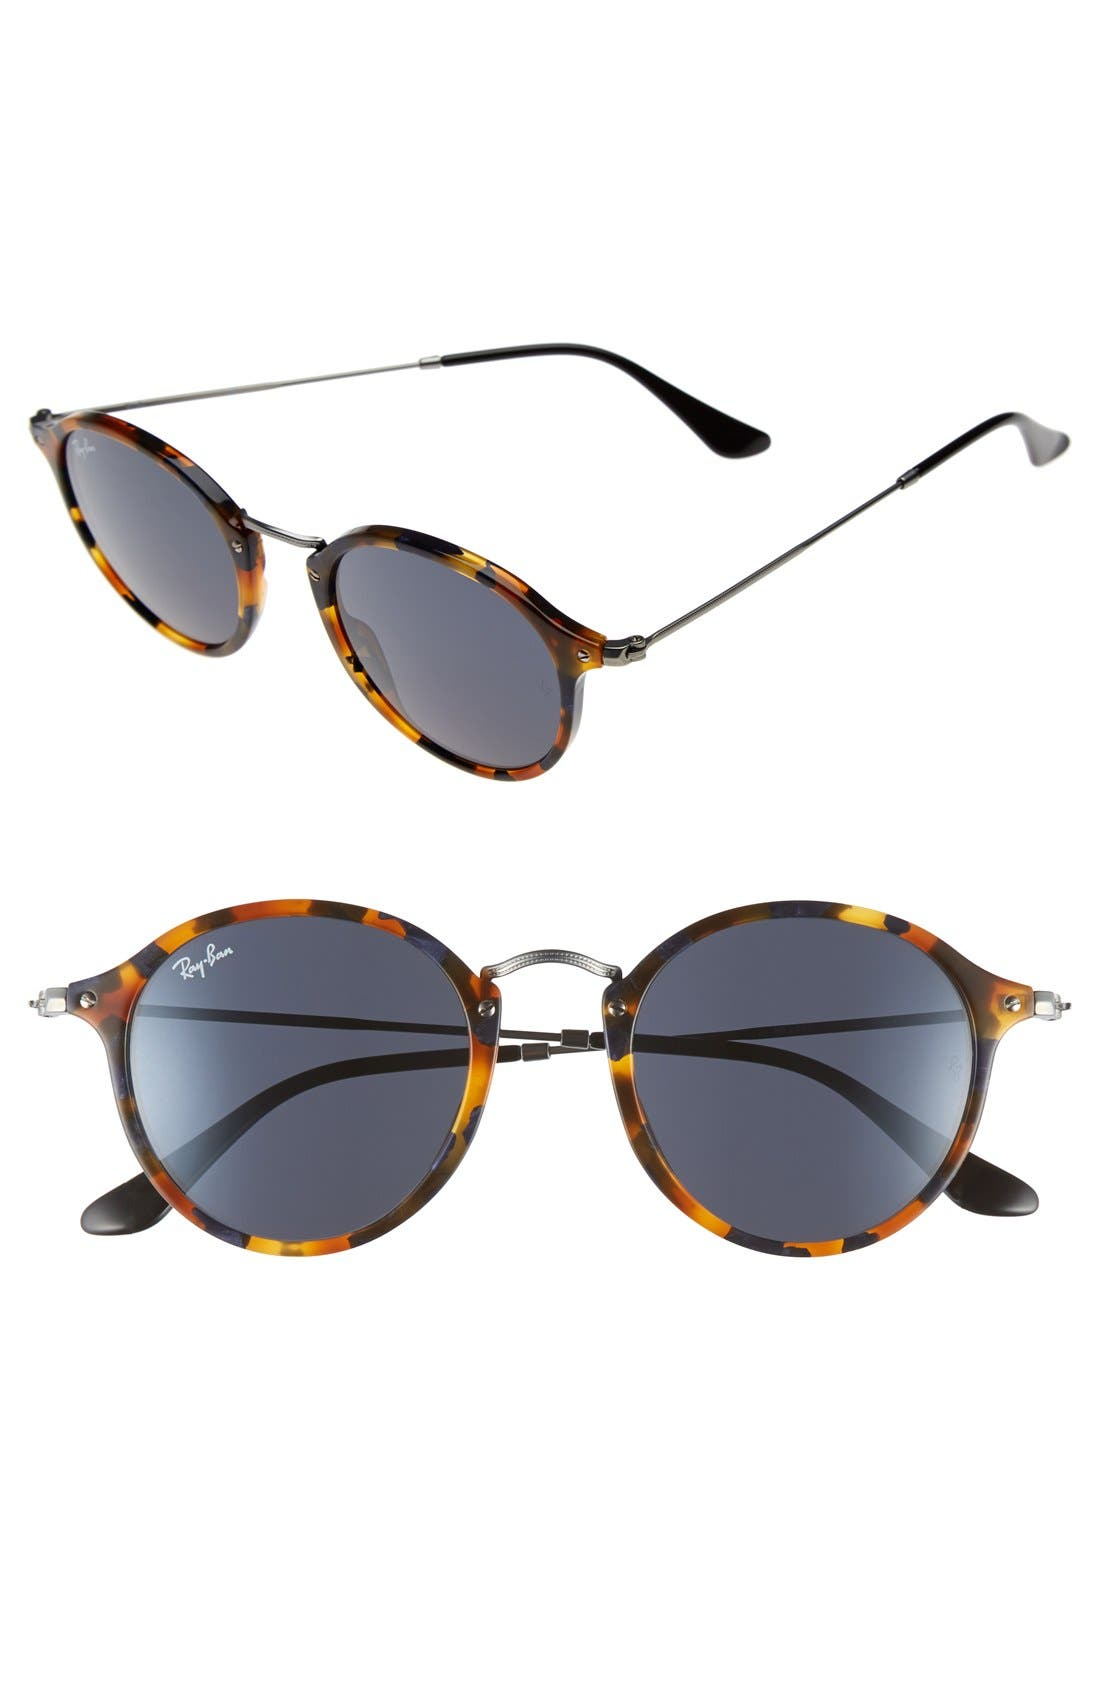 Main Image - Ray-Ban 49mm Retro Sunglasses